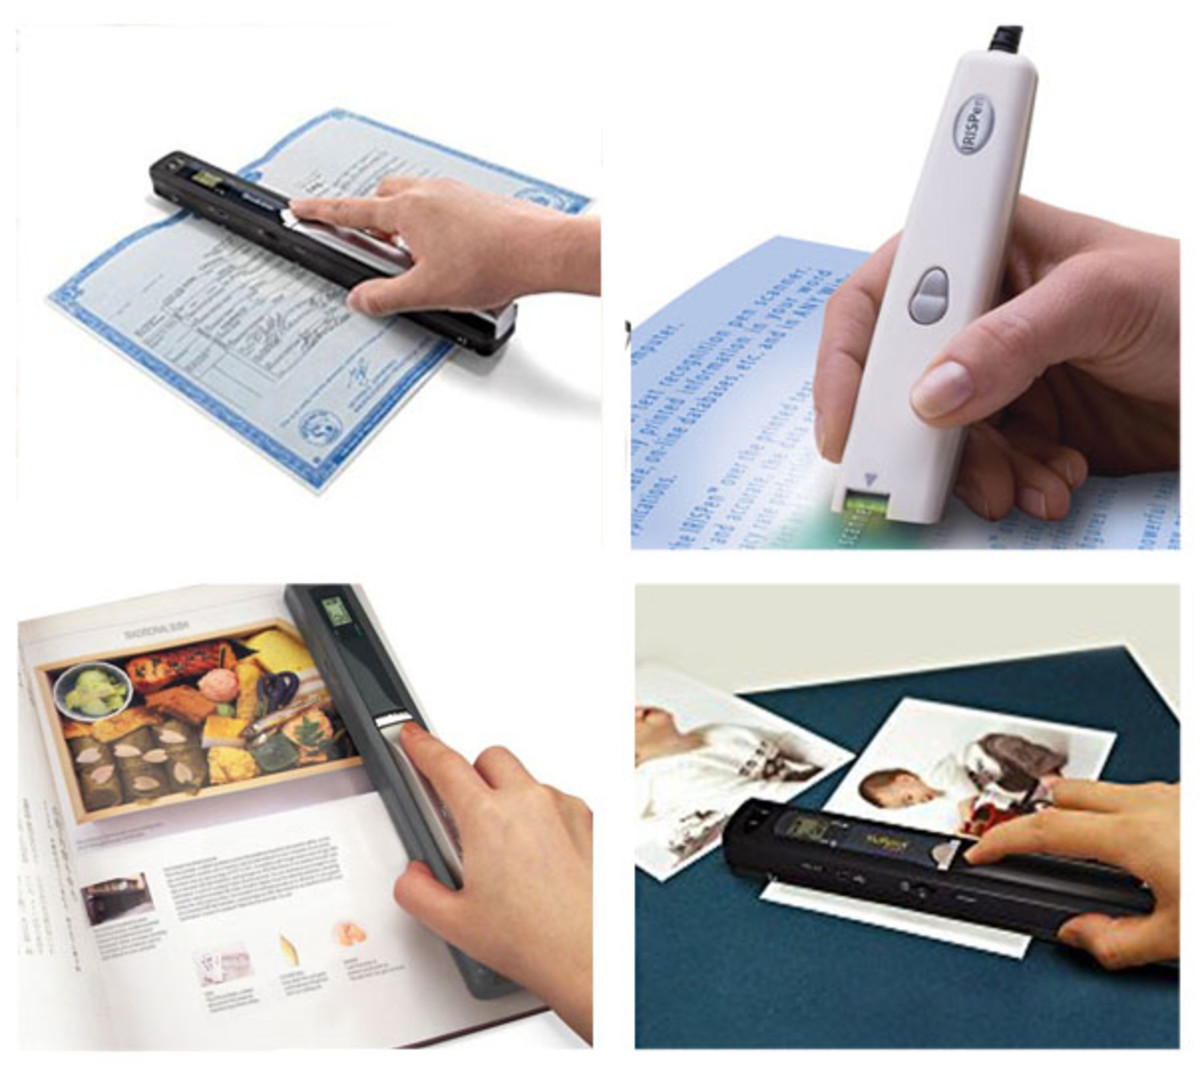 The 5 Best Handheld Document Scanners